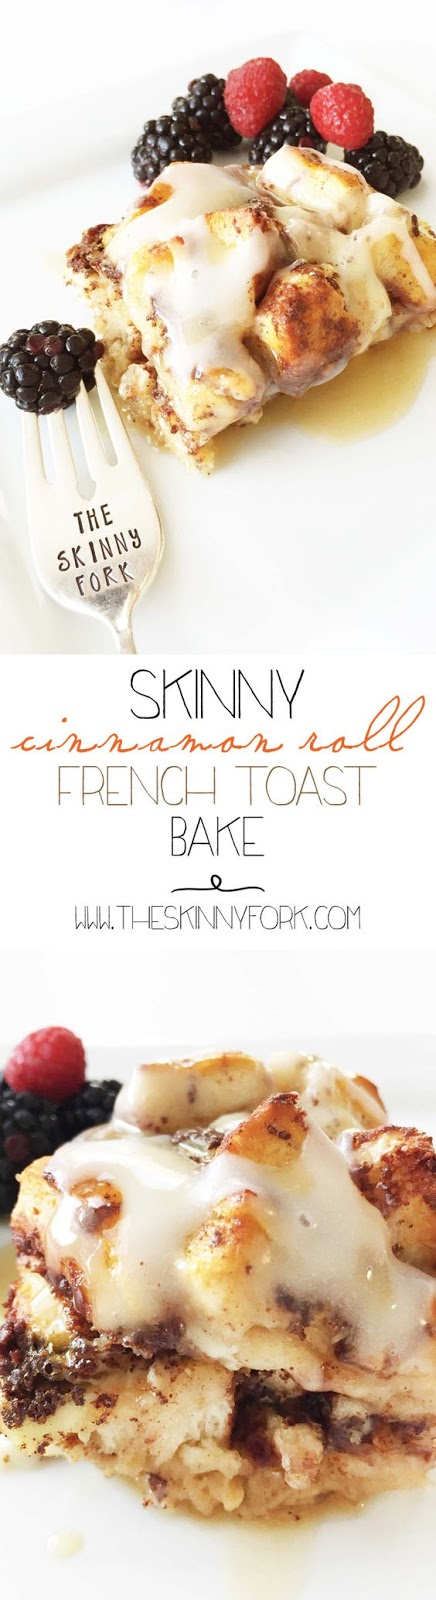 Skinny Cinnamon Roll French Toast Bake